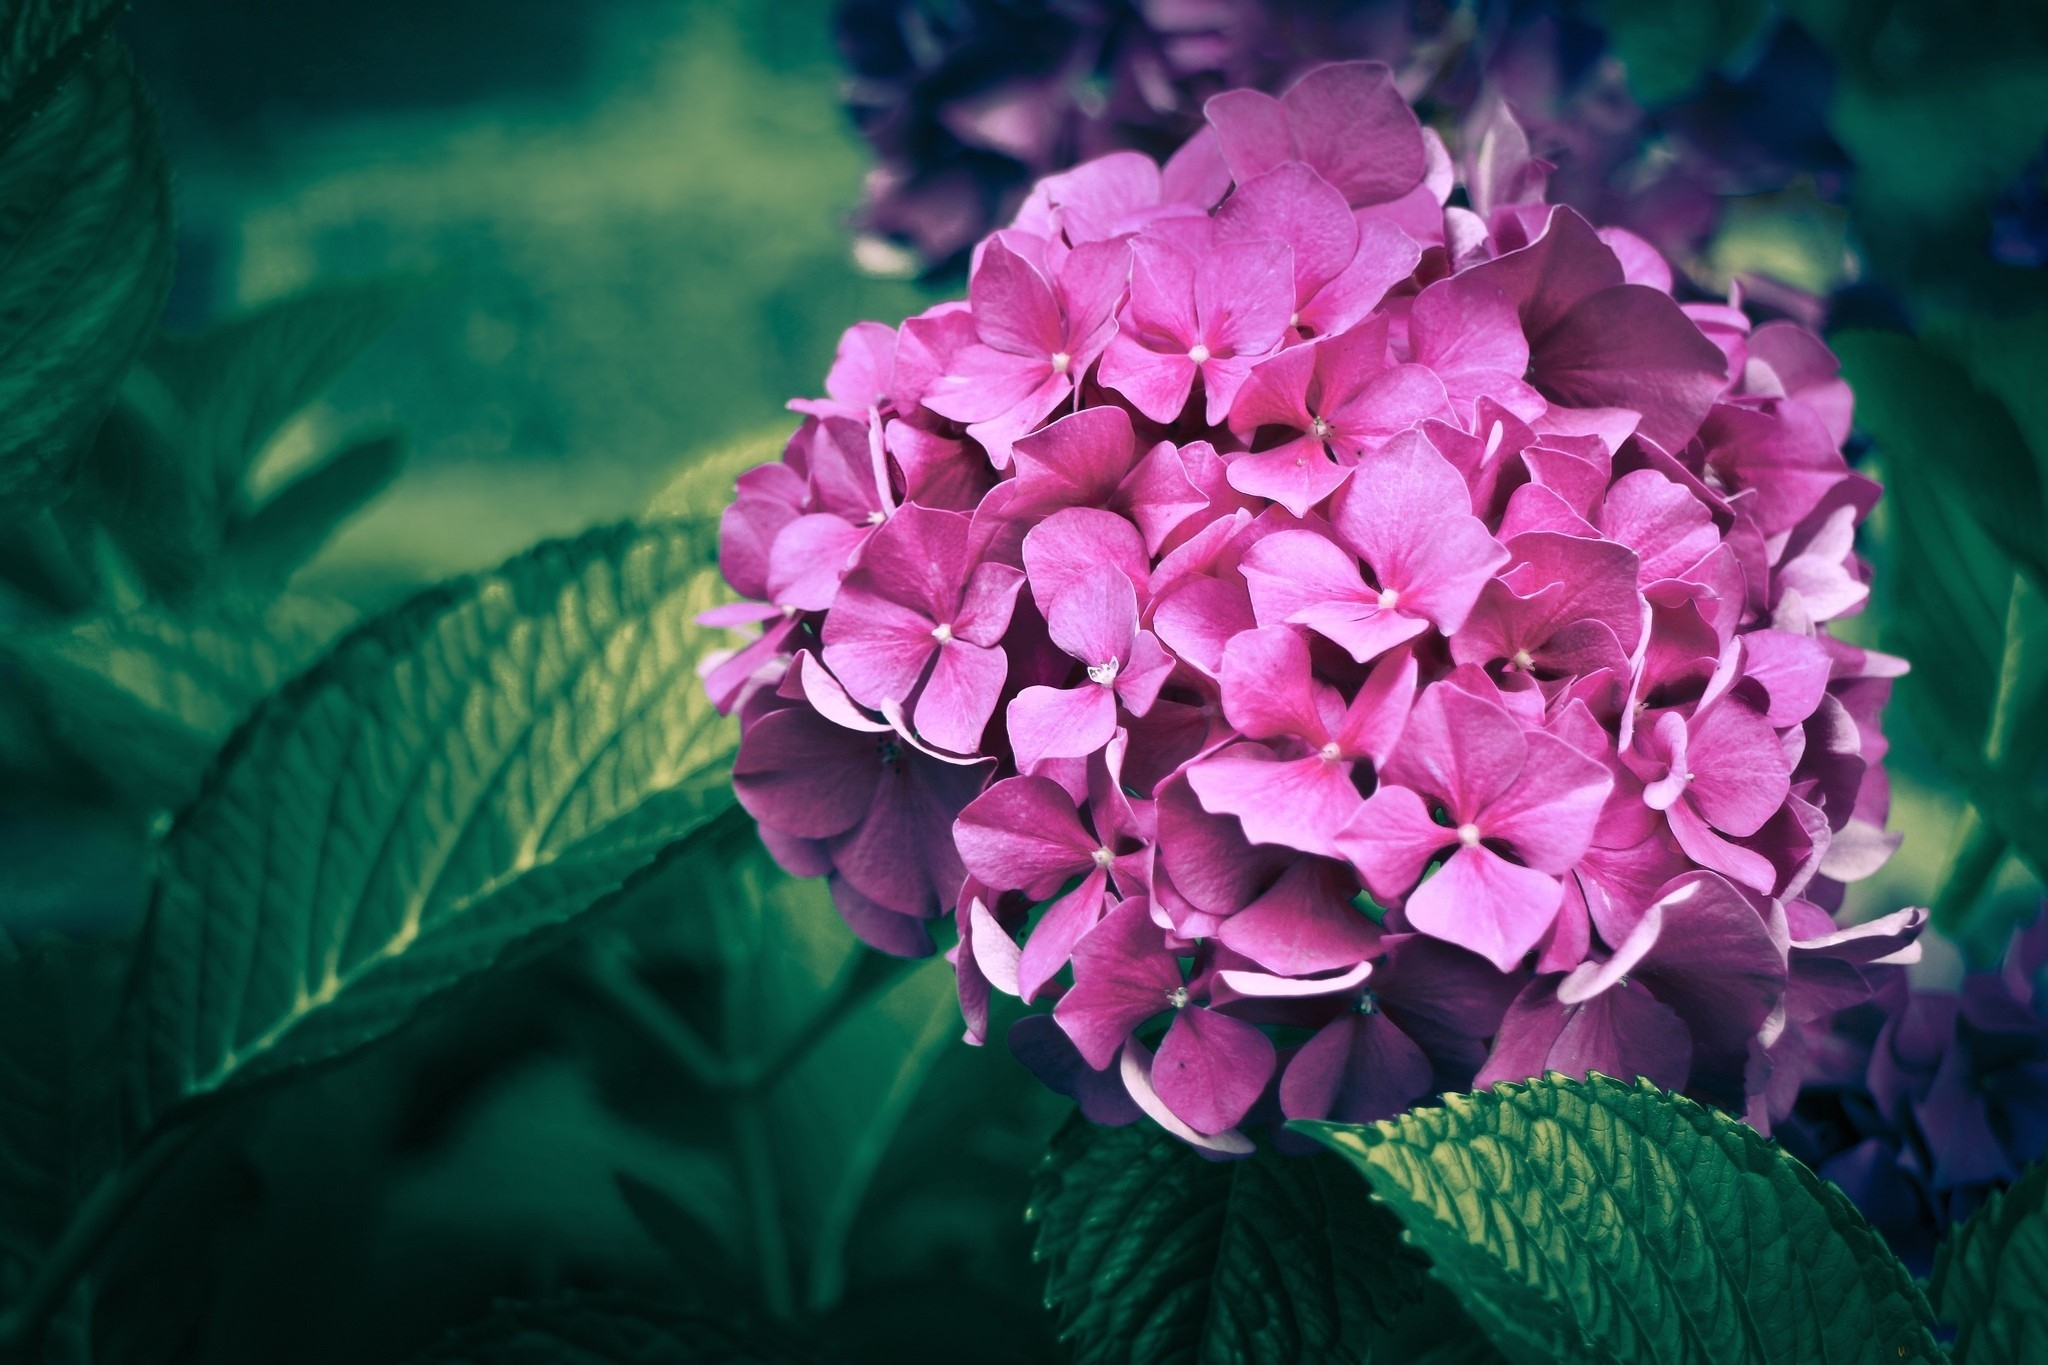 Nature-Flower-Flowers-Hydrangea-Pink-For-Android-Flowers-Nature-Flower-Flowers-Hydrange-wallpaper-wp3608895